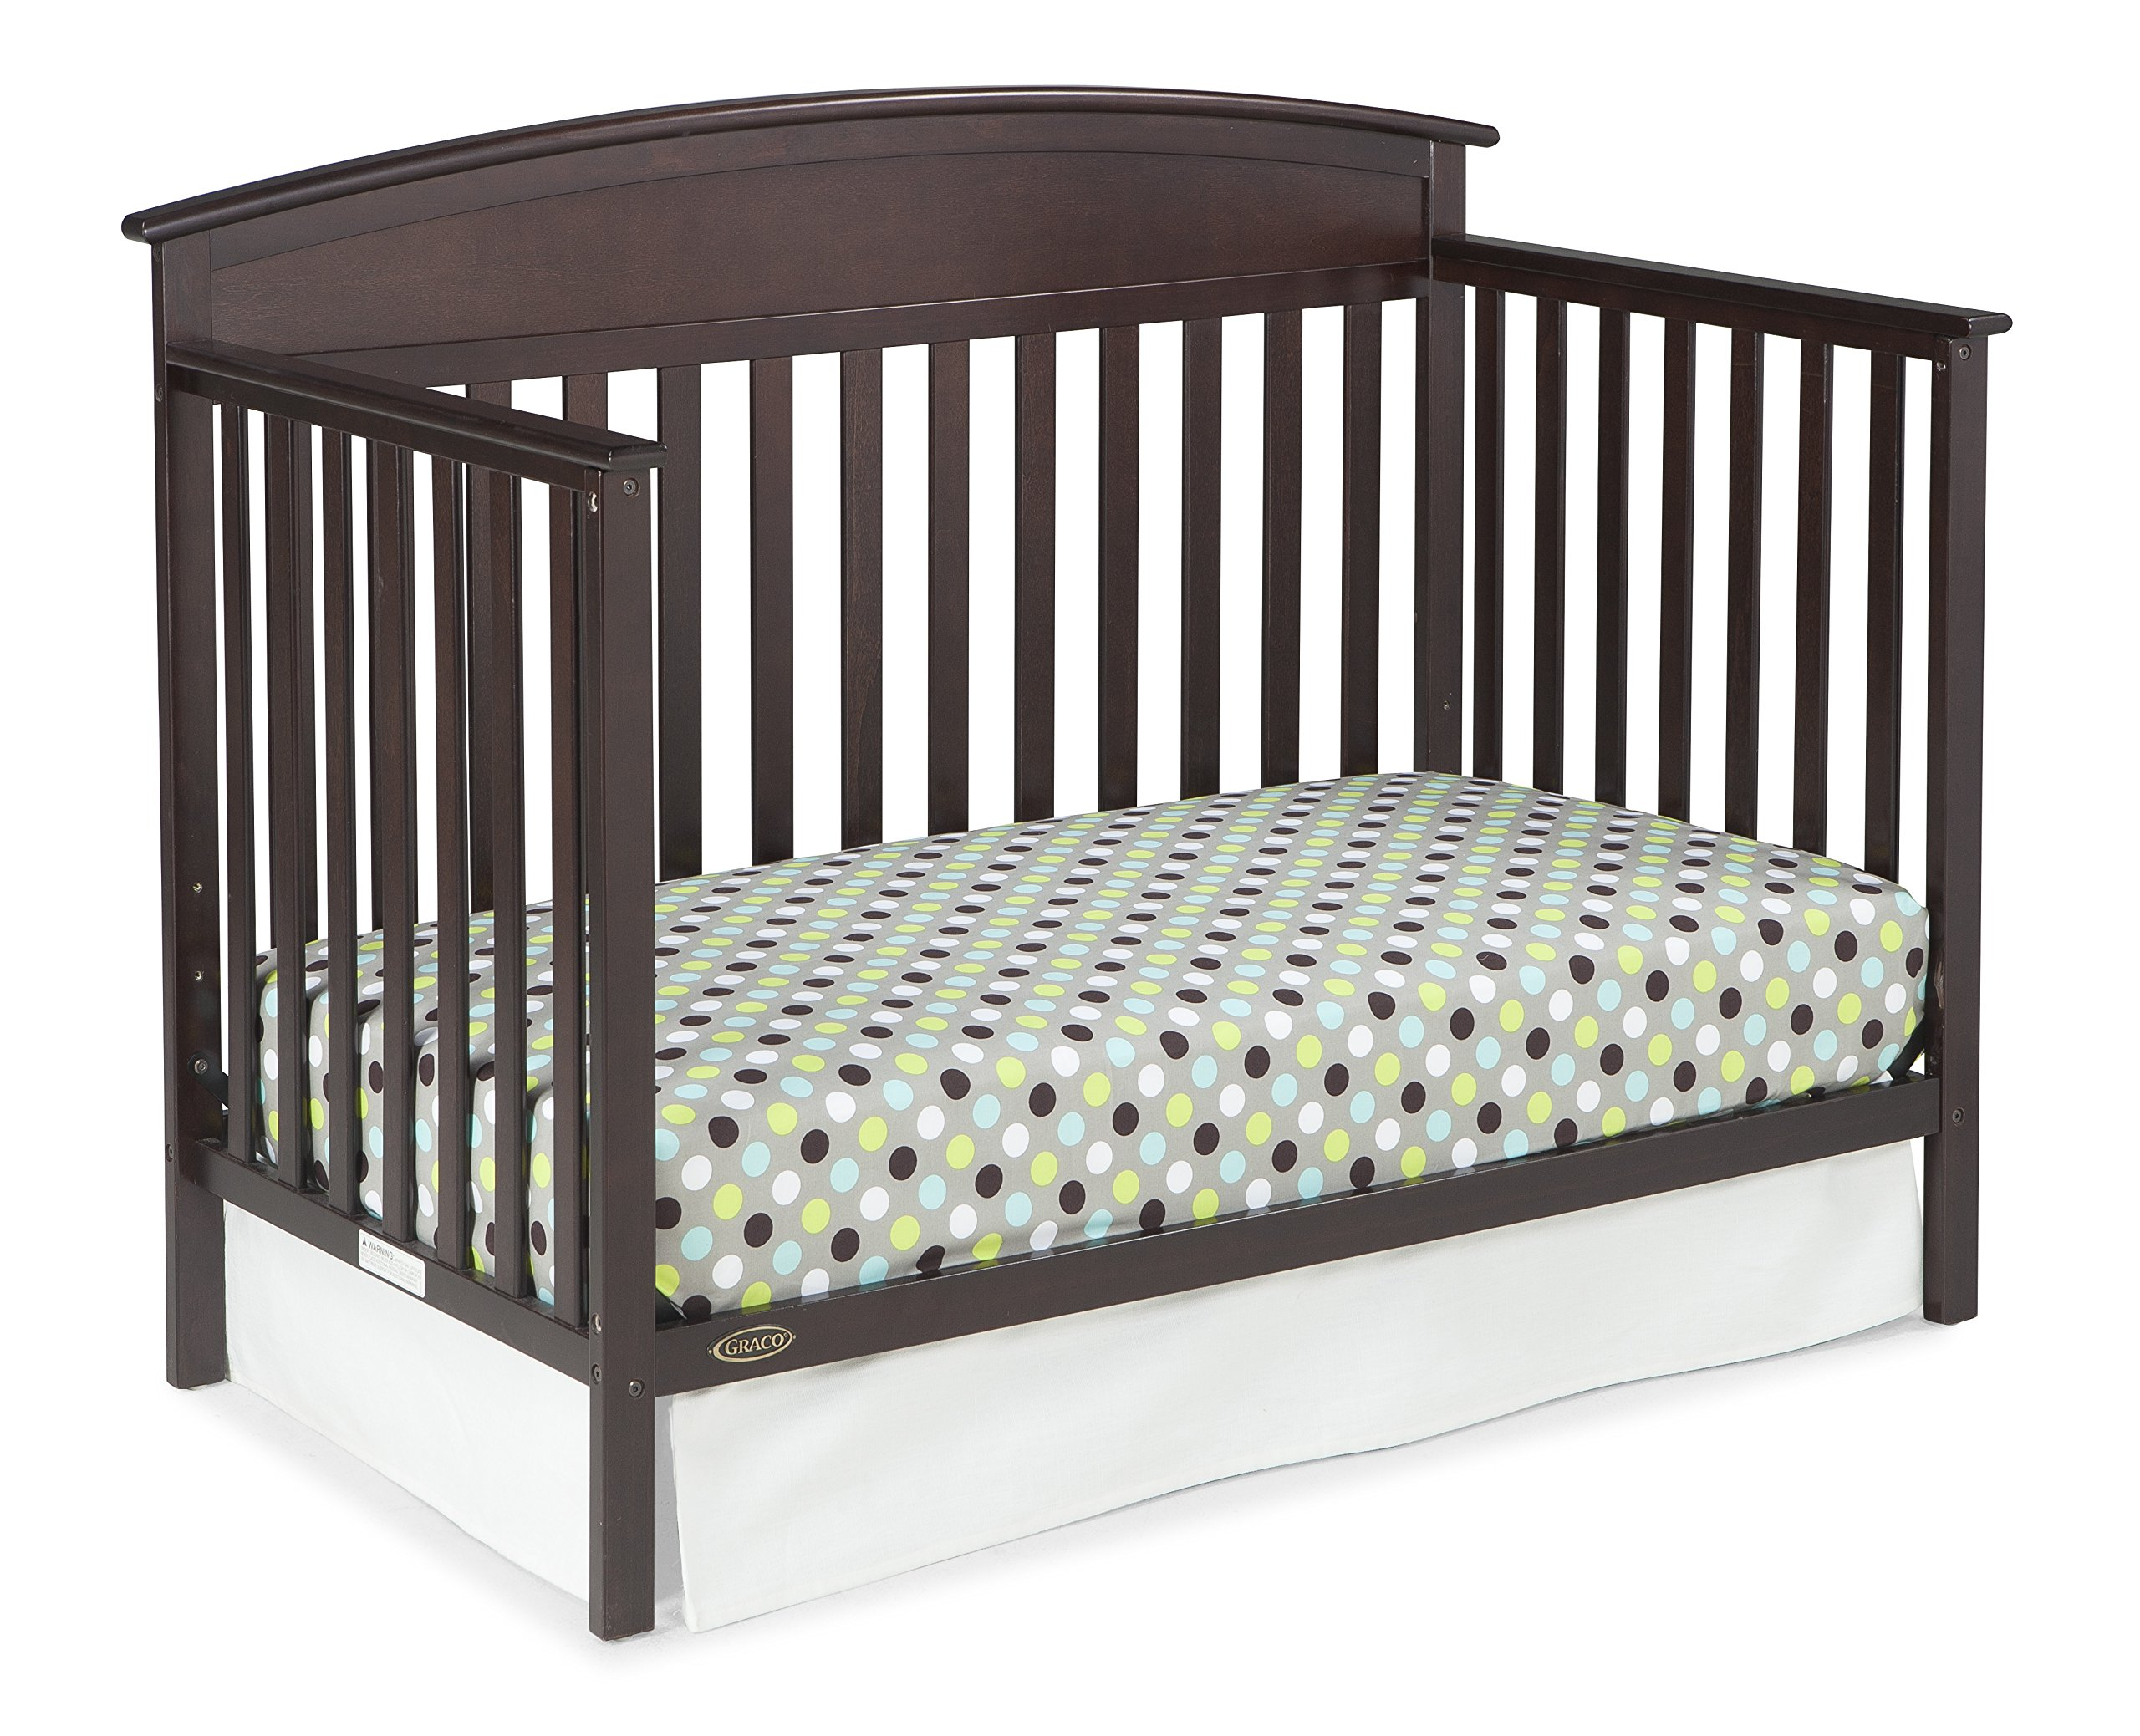 graco benton 5 in 1 convertible crib espresso easily converts to toddler bed ebay. Black Bedroom Furniture Sets. Home Design Ideas